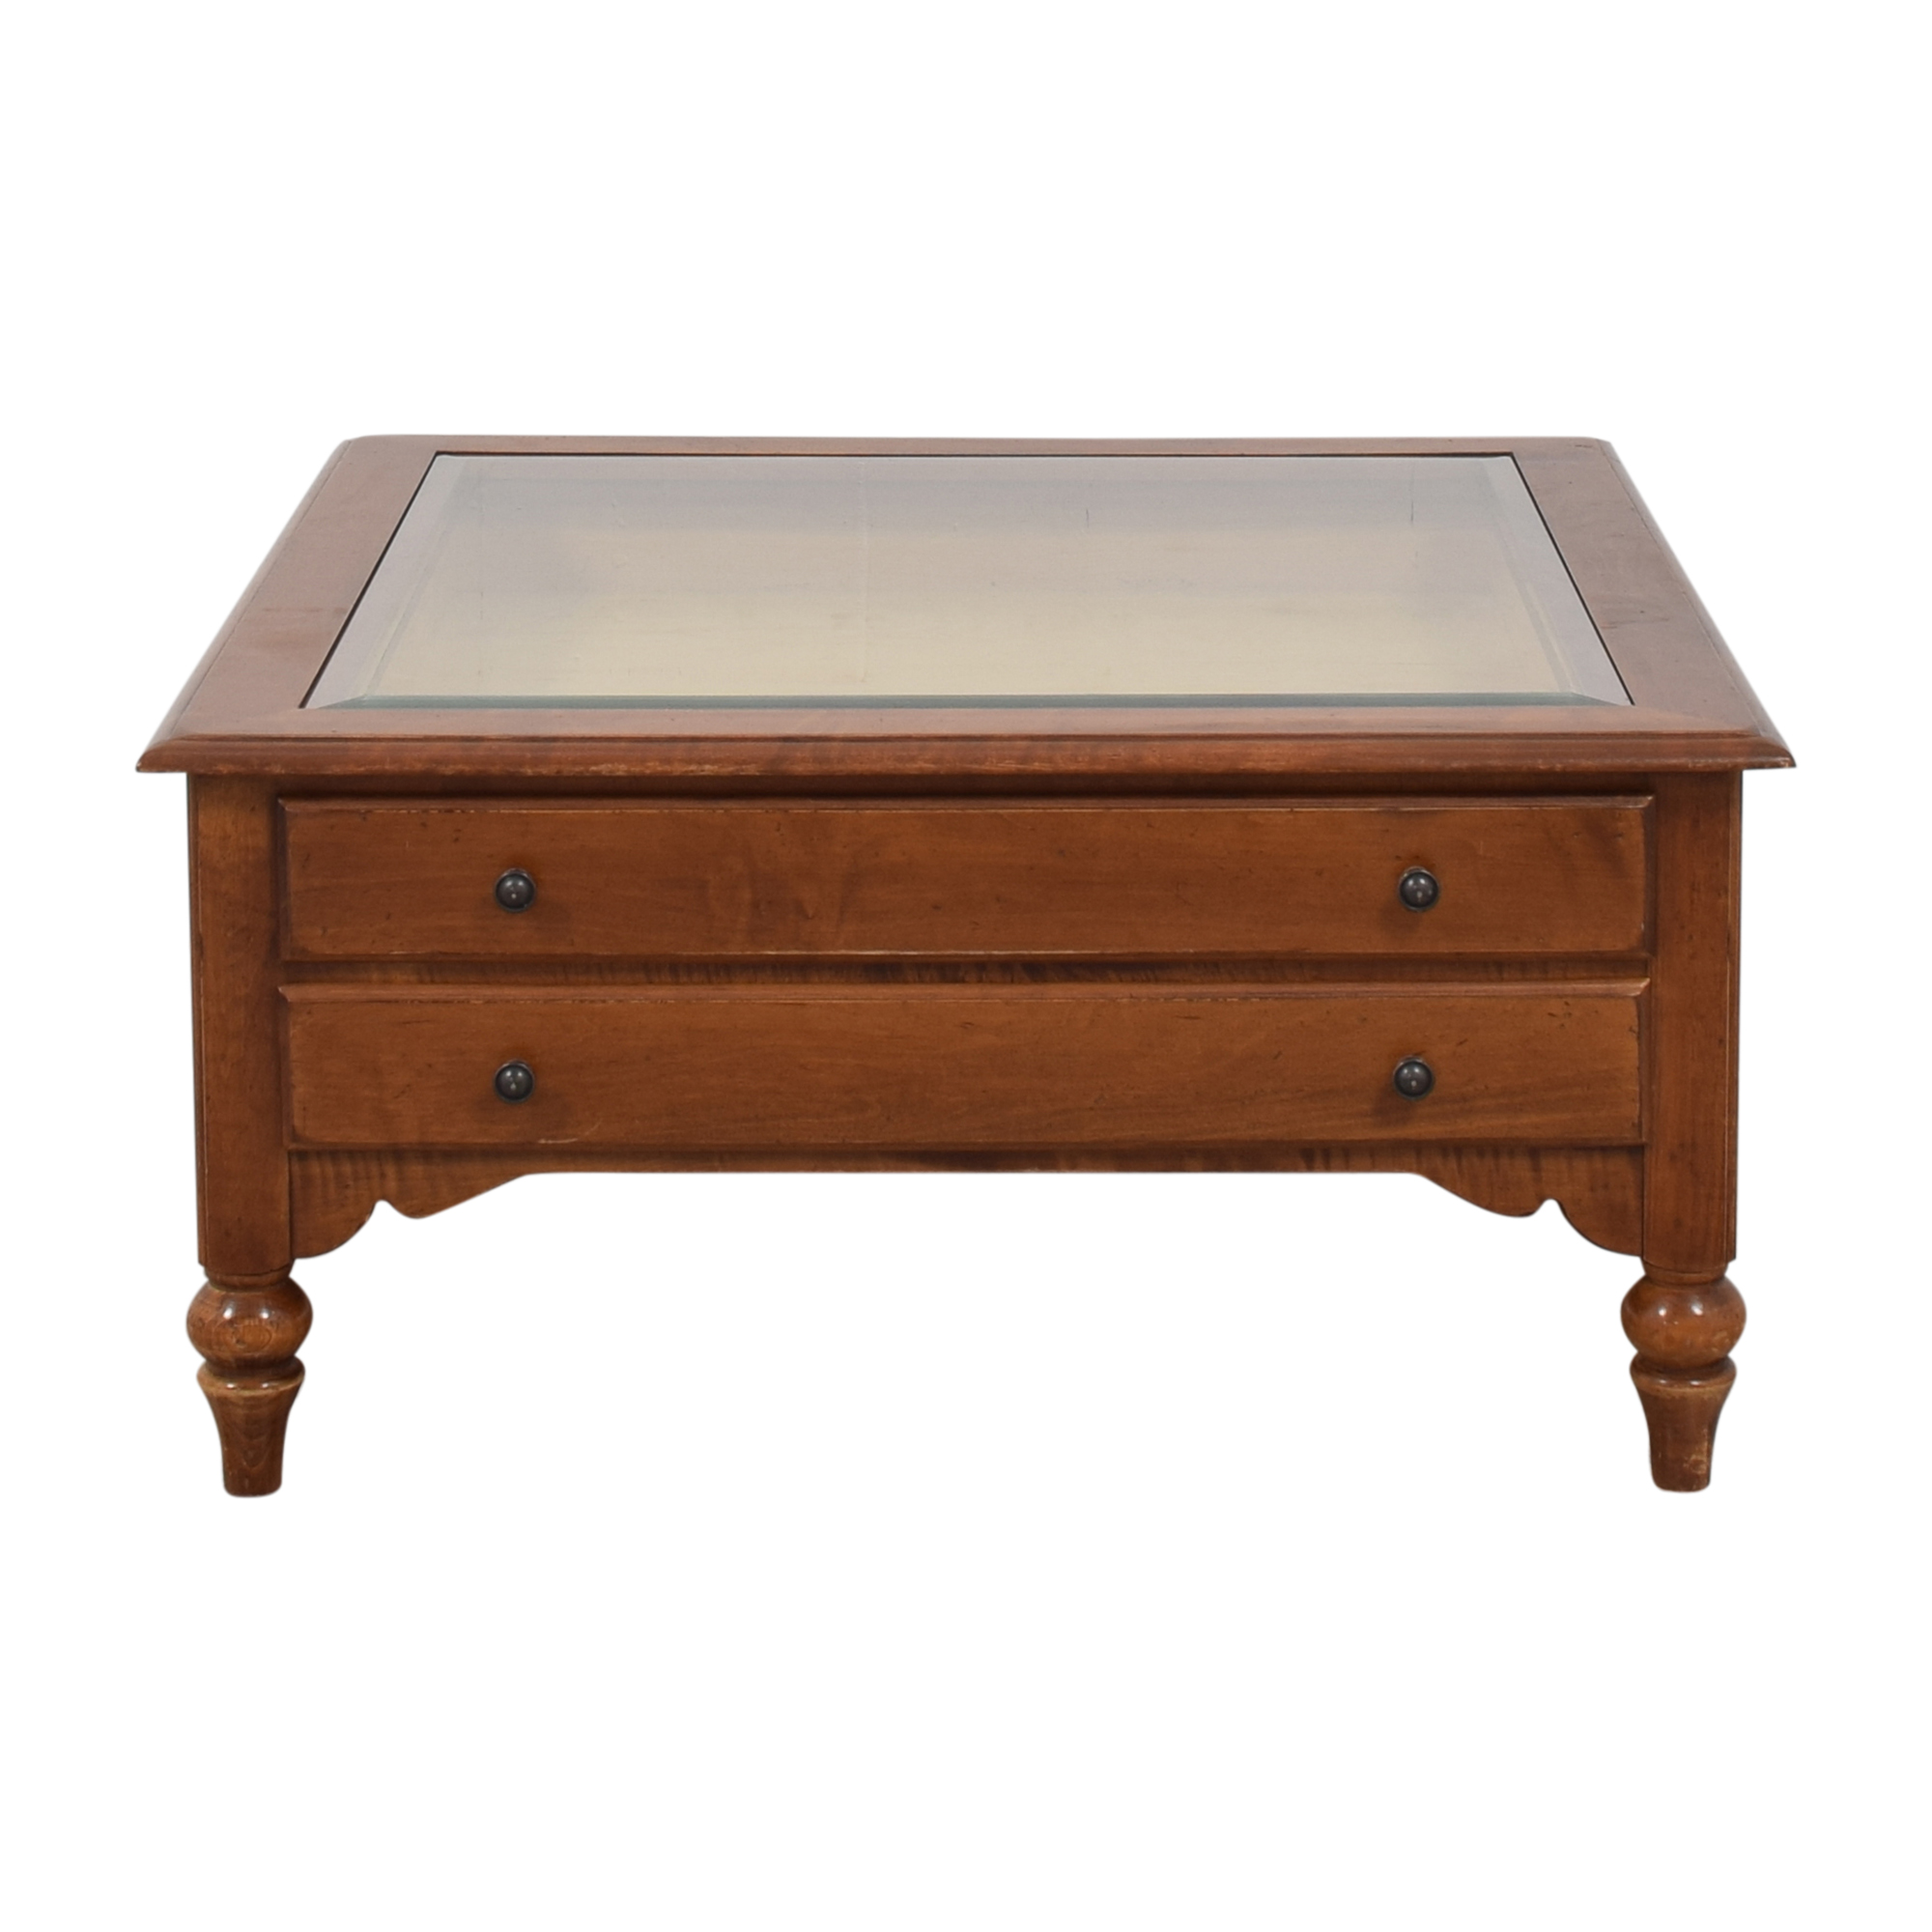 Ethan Allen Ethan Allen Country Crossing Curio Coffee Table for sale